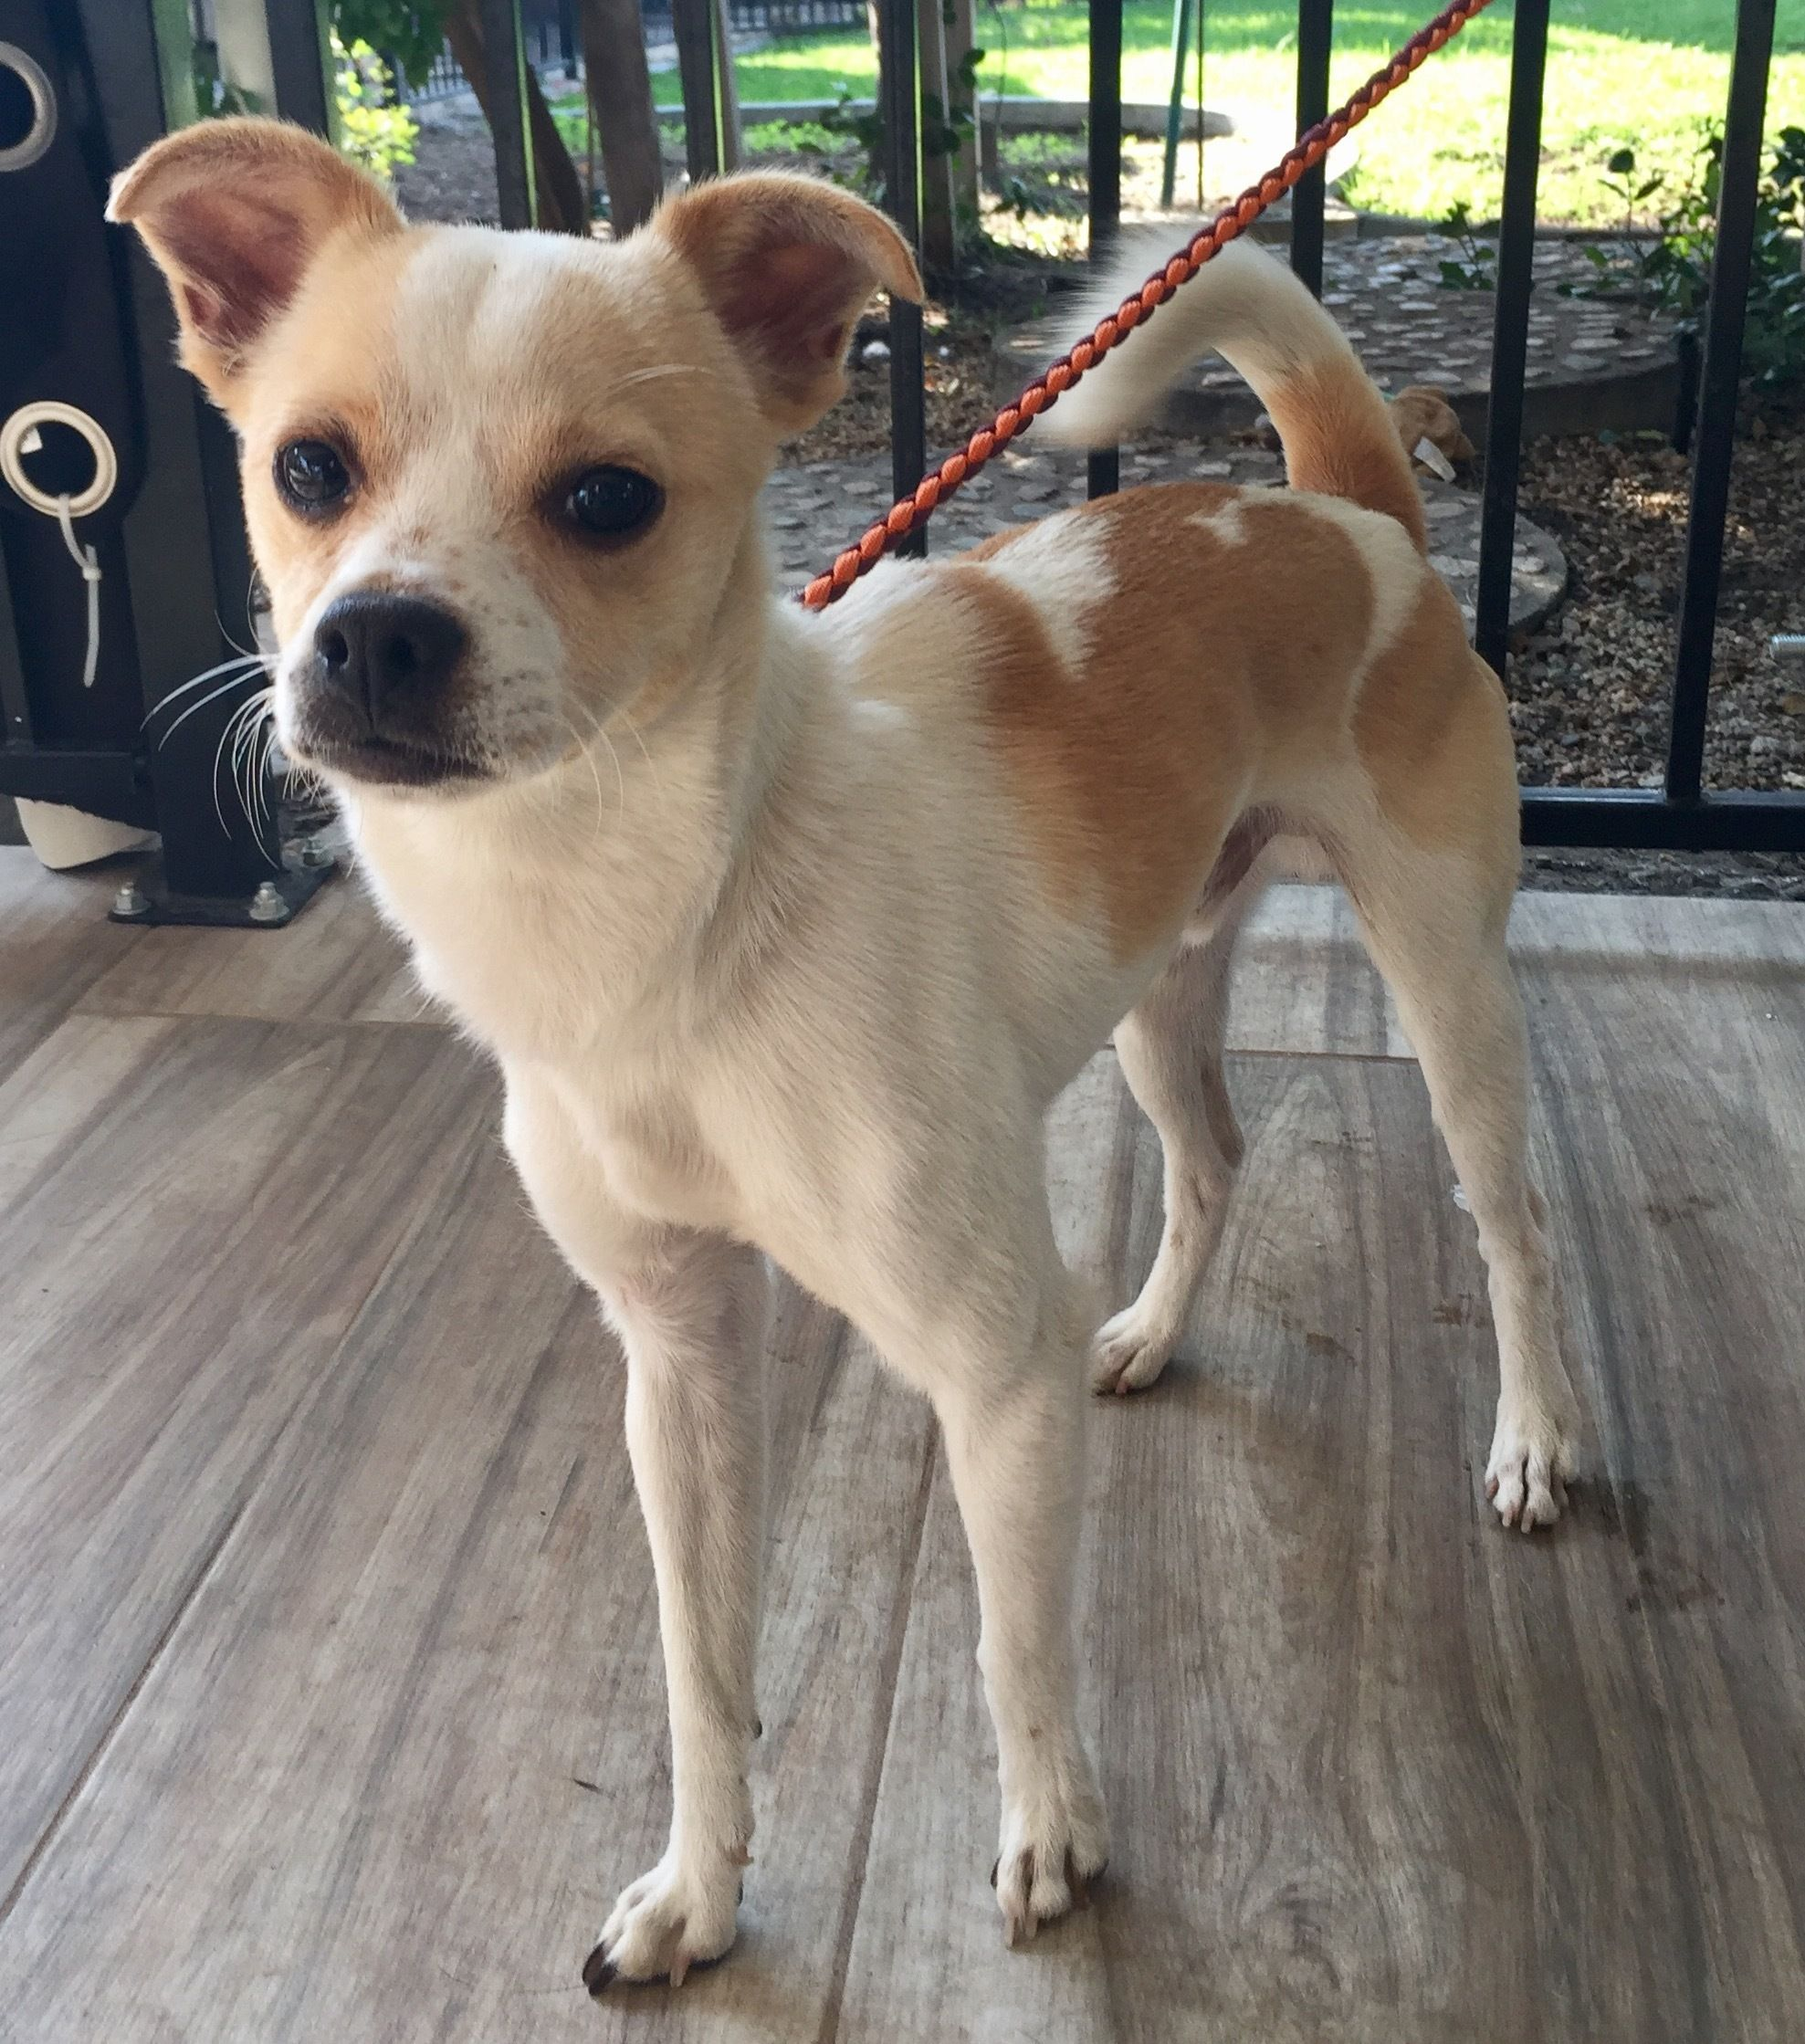 Adopt Captain Jack on Pitbull terrier, Rat terrier mix, Dogs